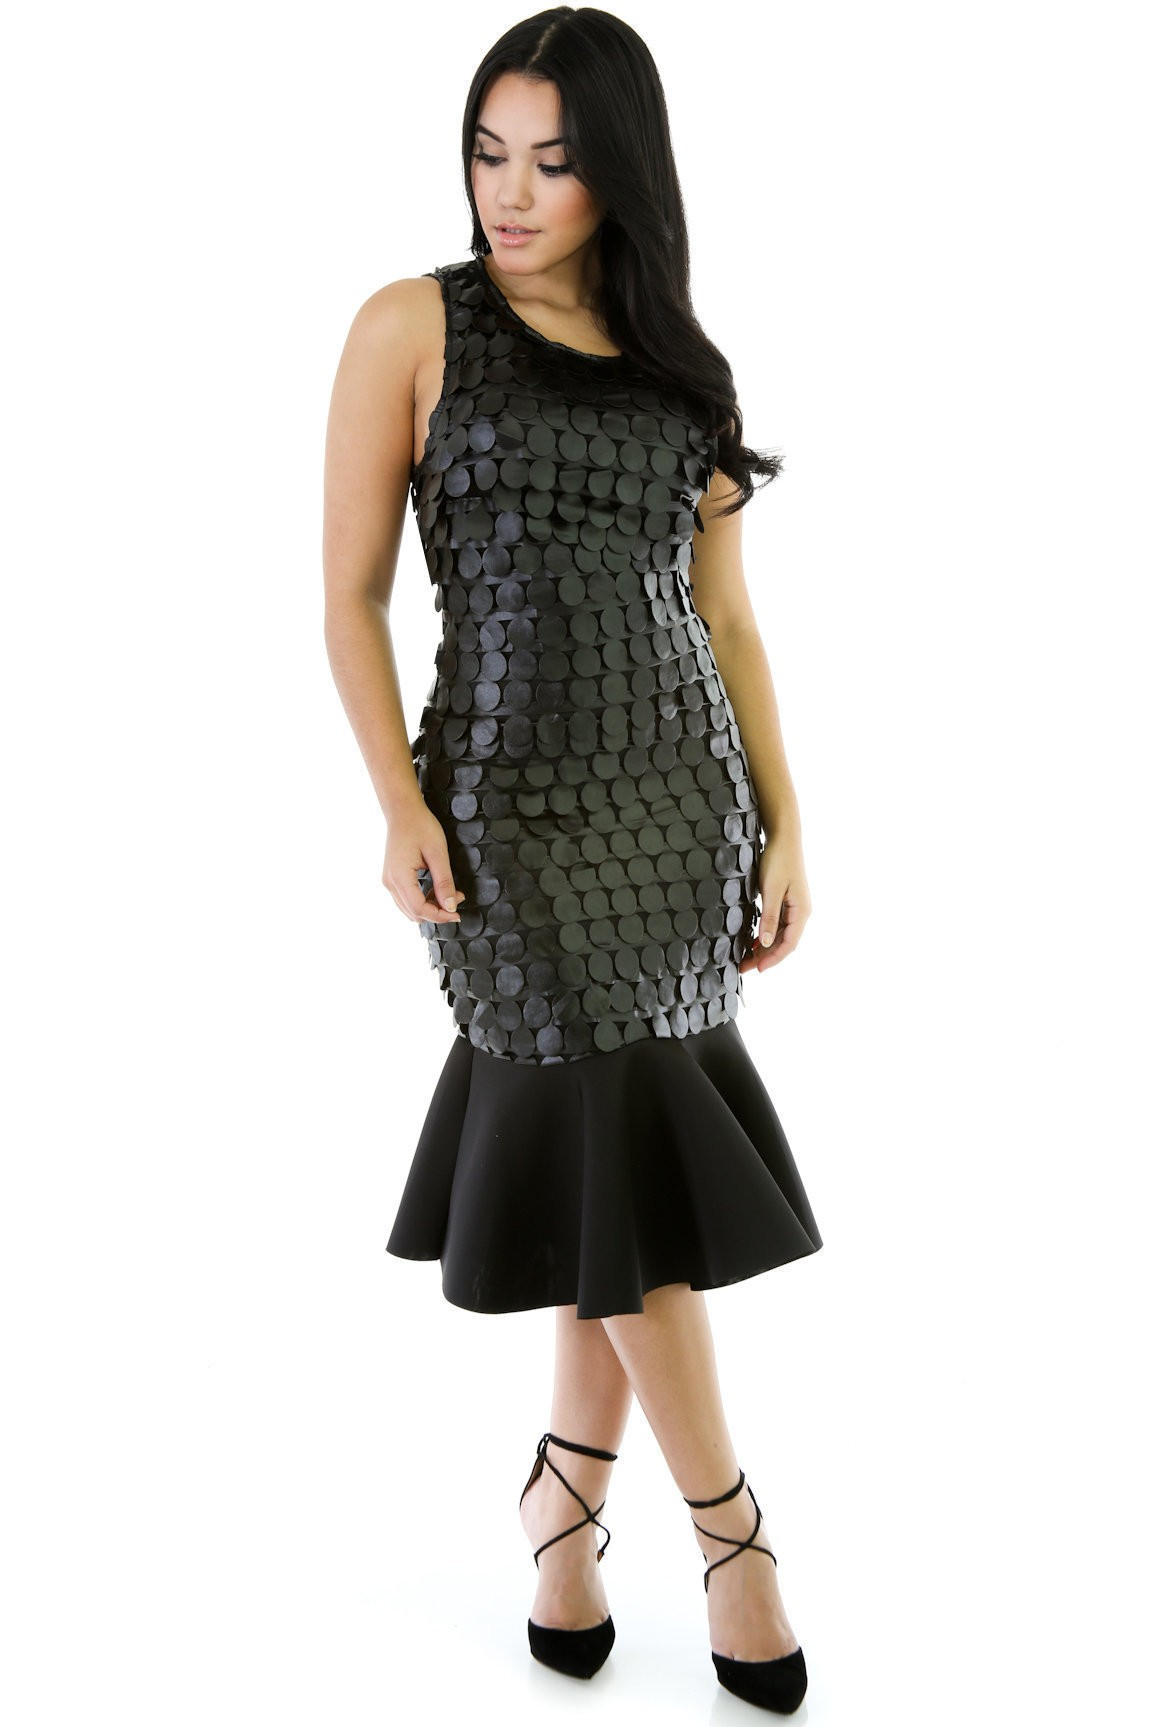 Scale Up Dress